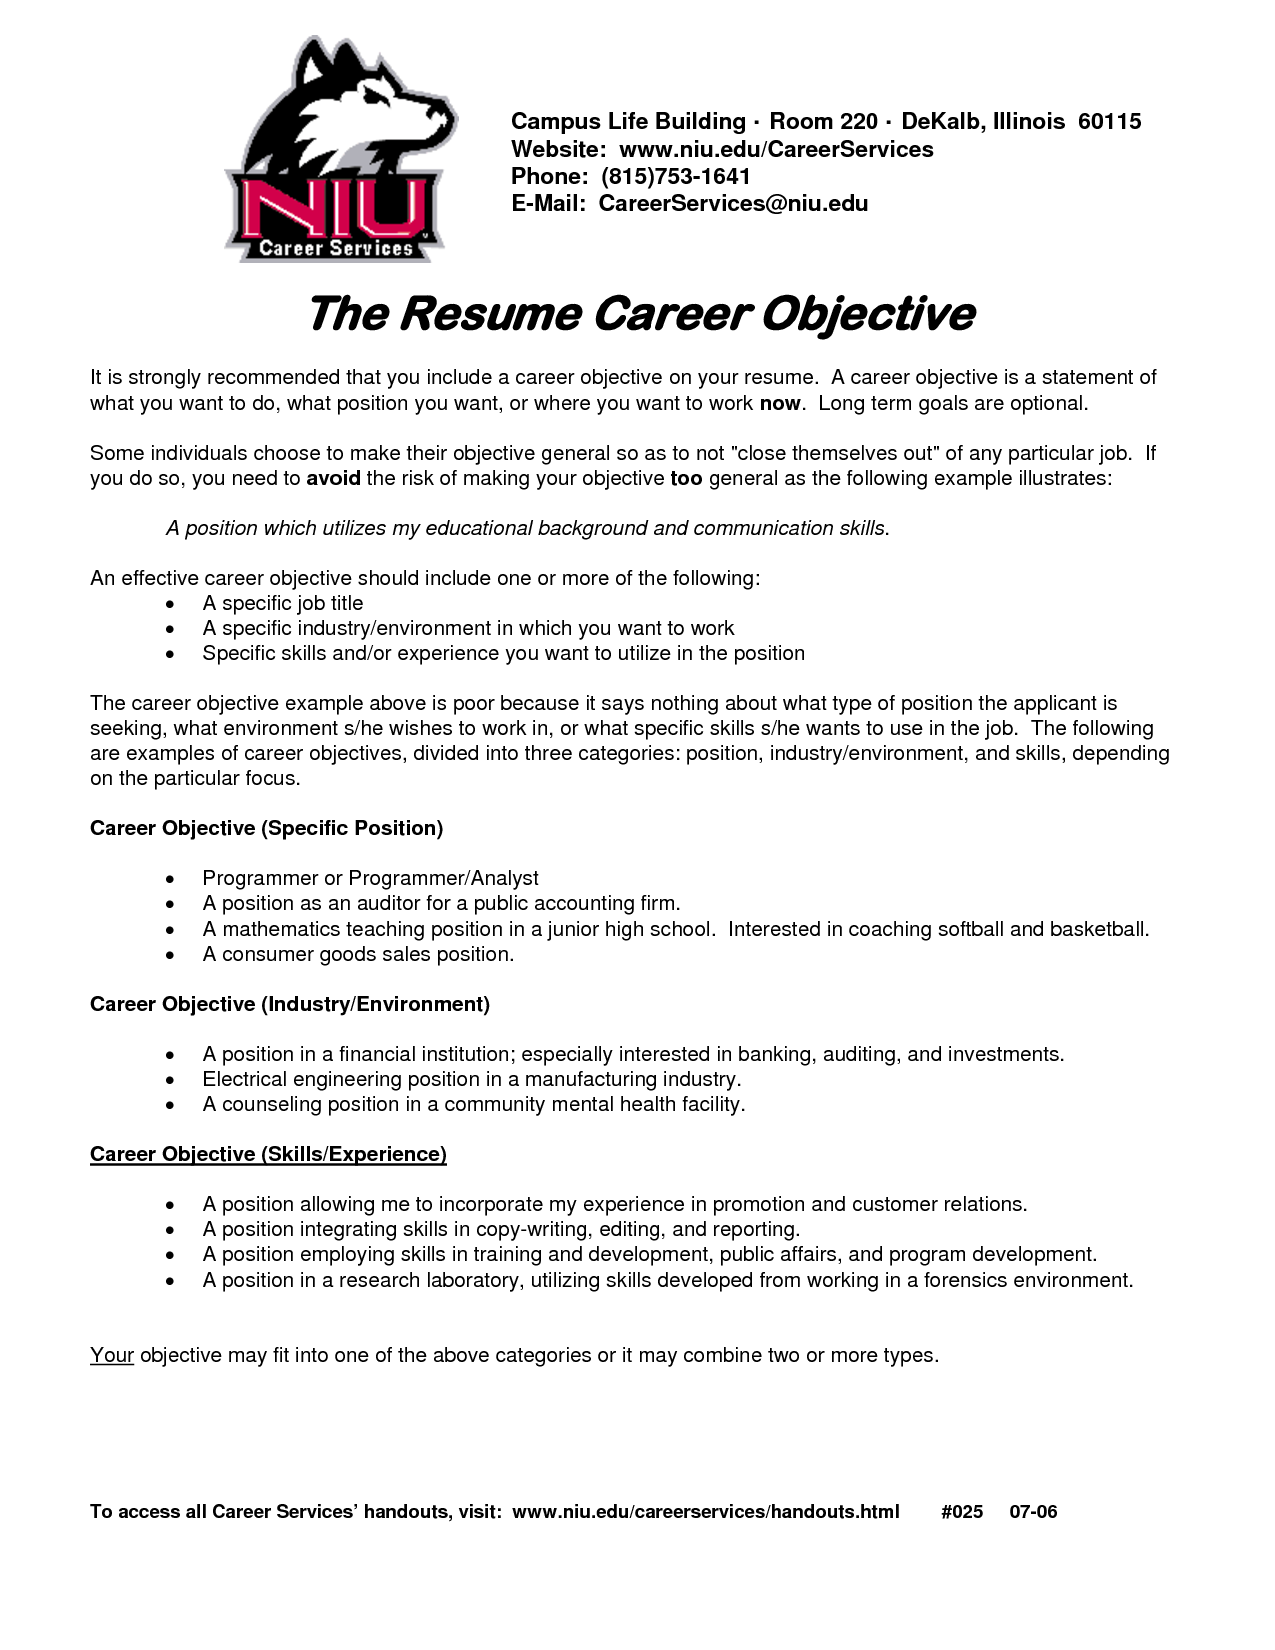 Job Objective For Resume Httpswwwgooglesearchqobjective Resume  Resume